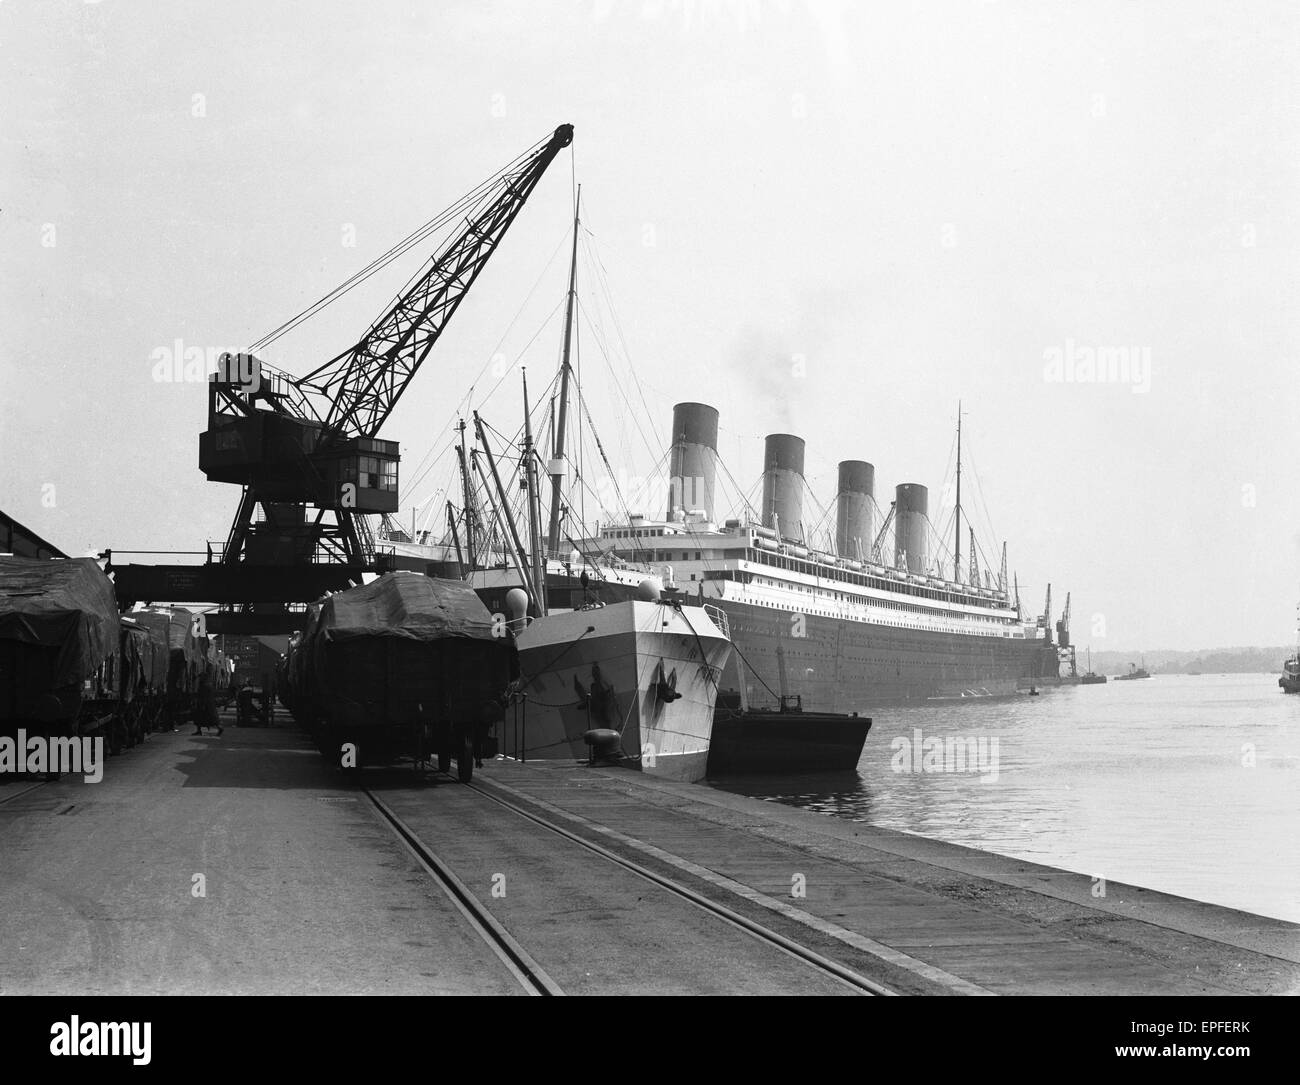 Rms Olympic: White Star Line Liner RMS Olympic, Sistership Of The Ill